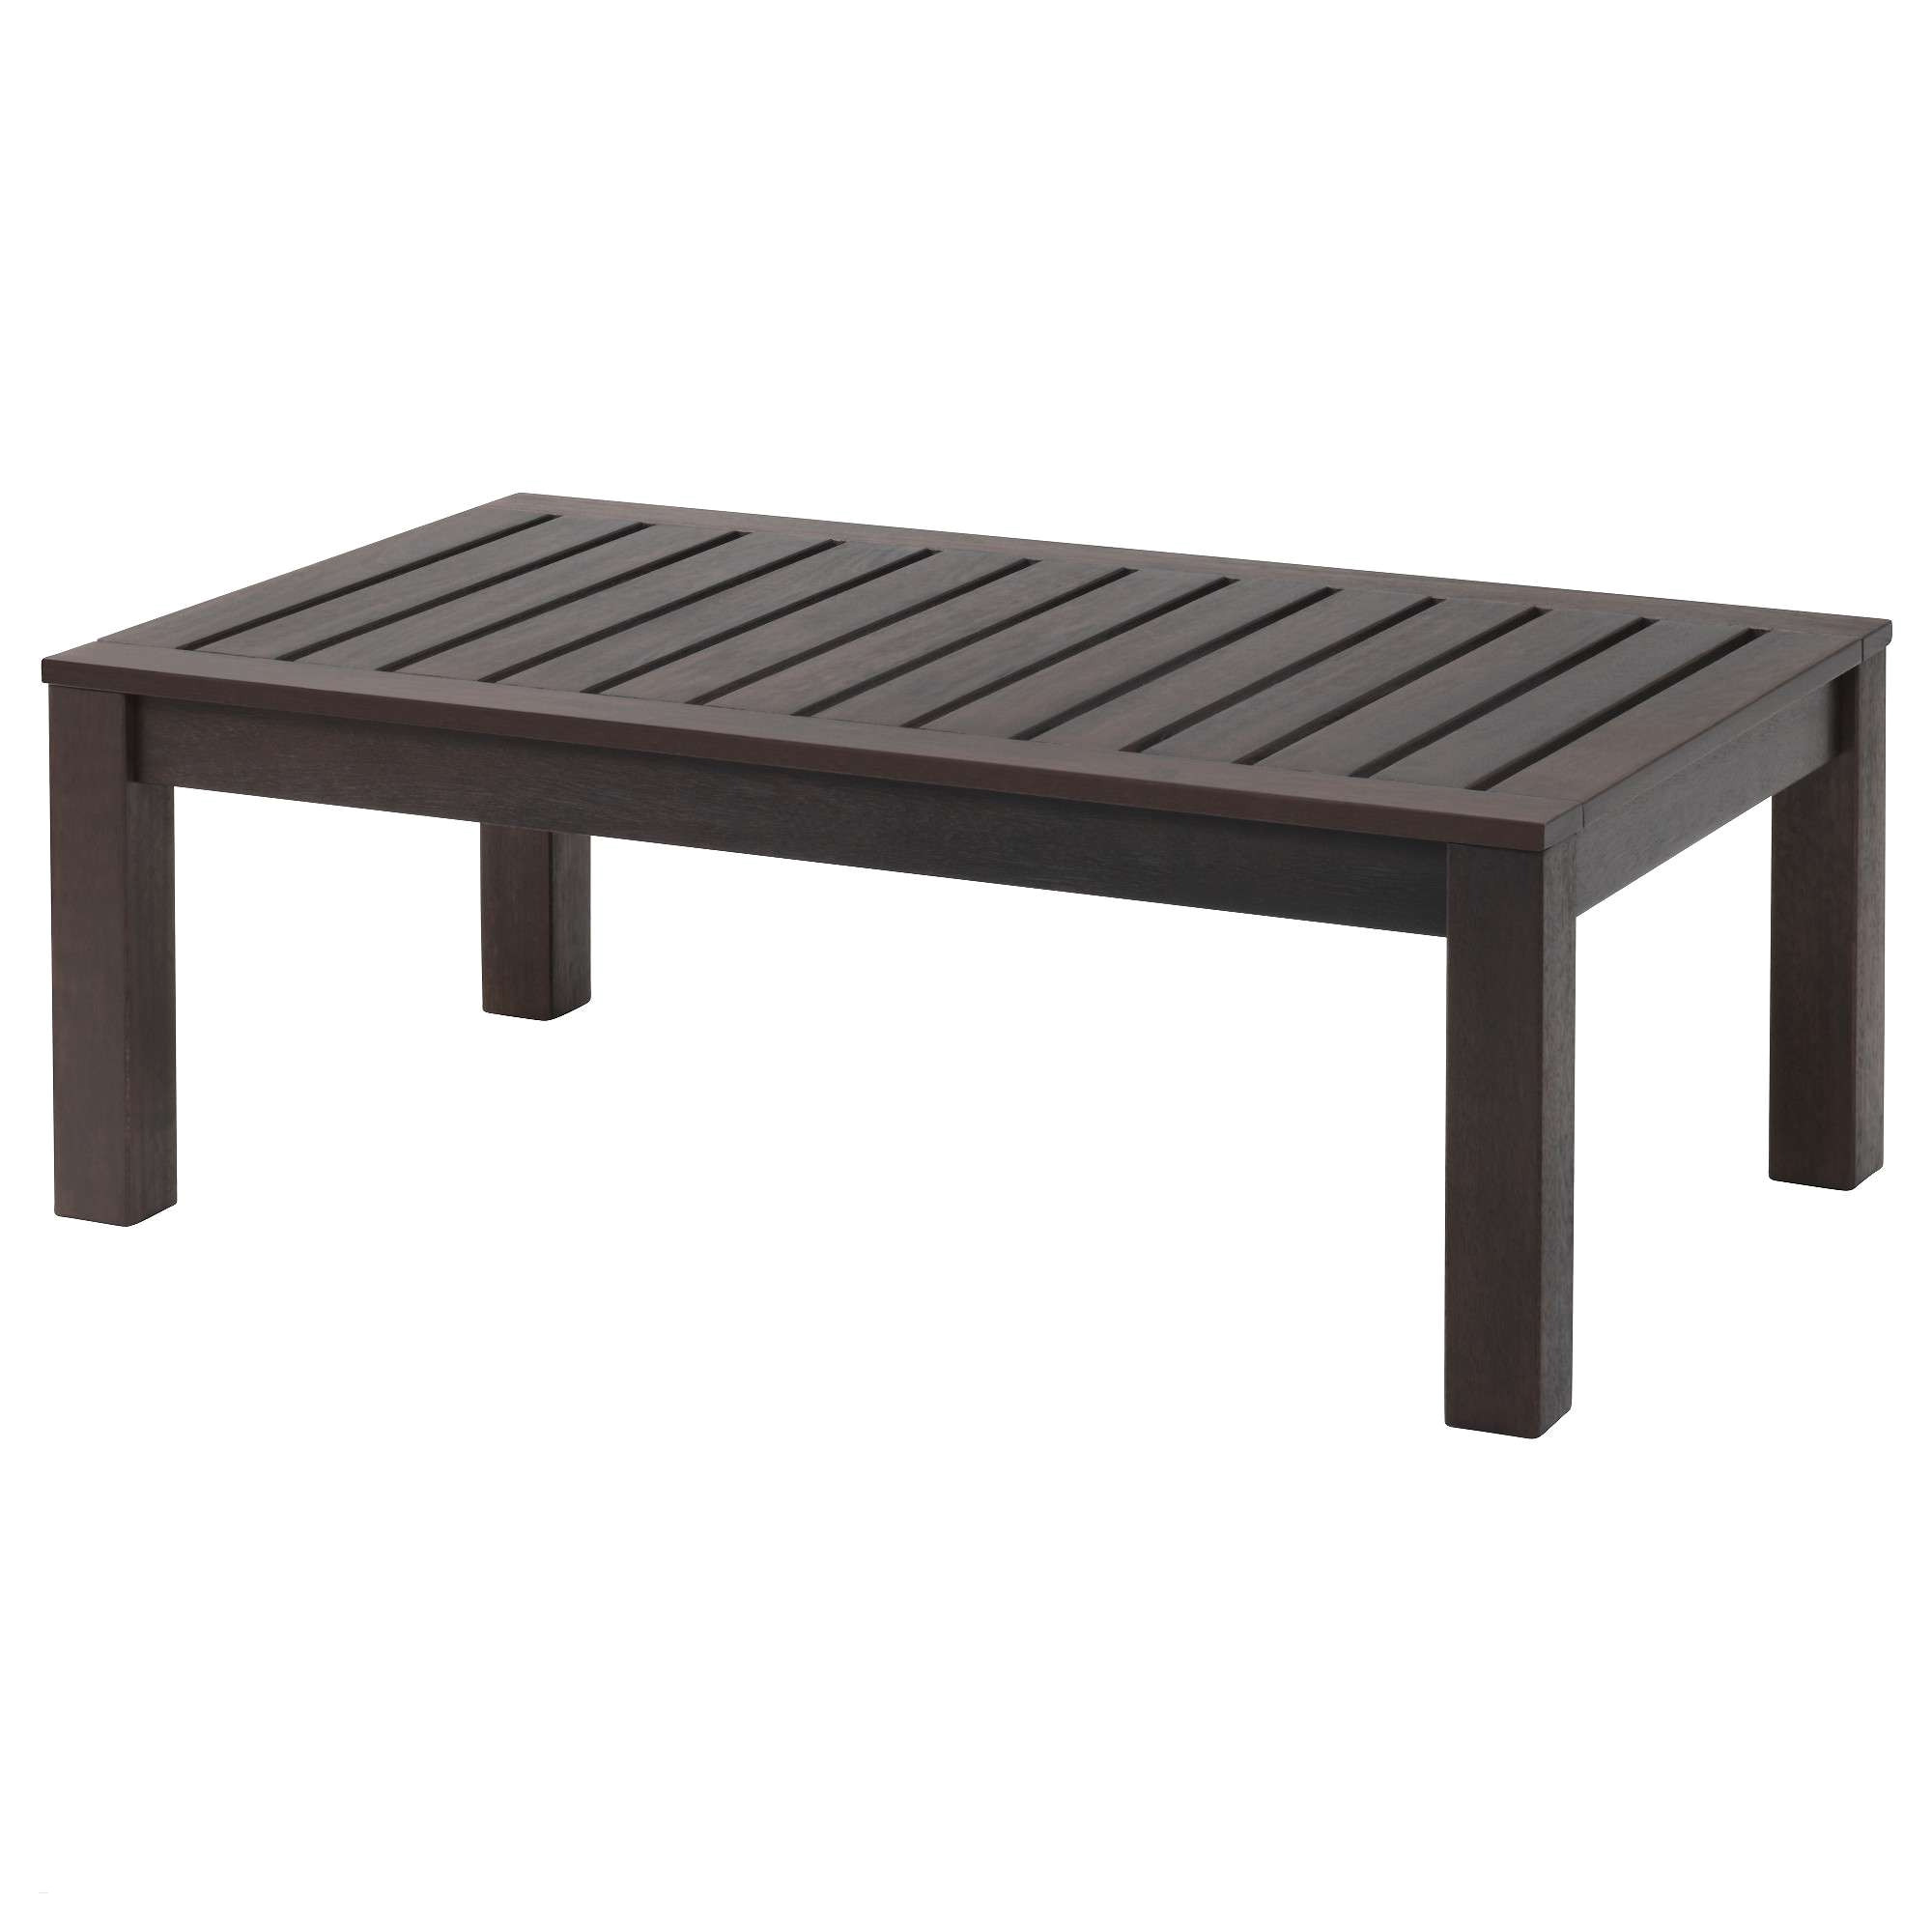 wrought iron outdoor coffee table collection outdoor wrought iron furniture beautiful coffee tables rowan od